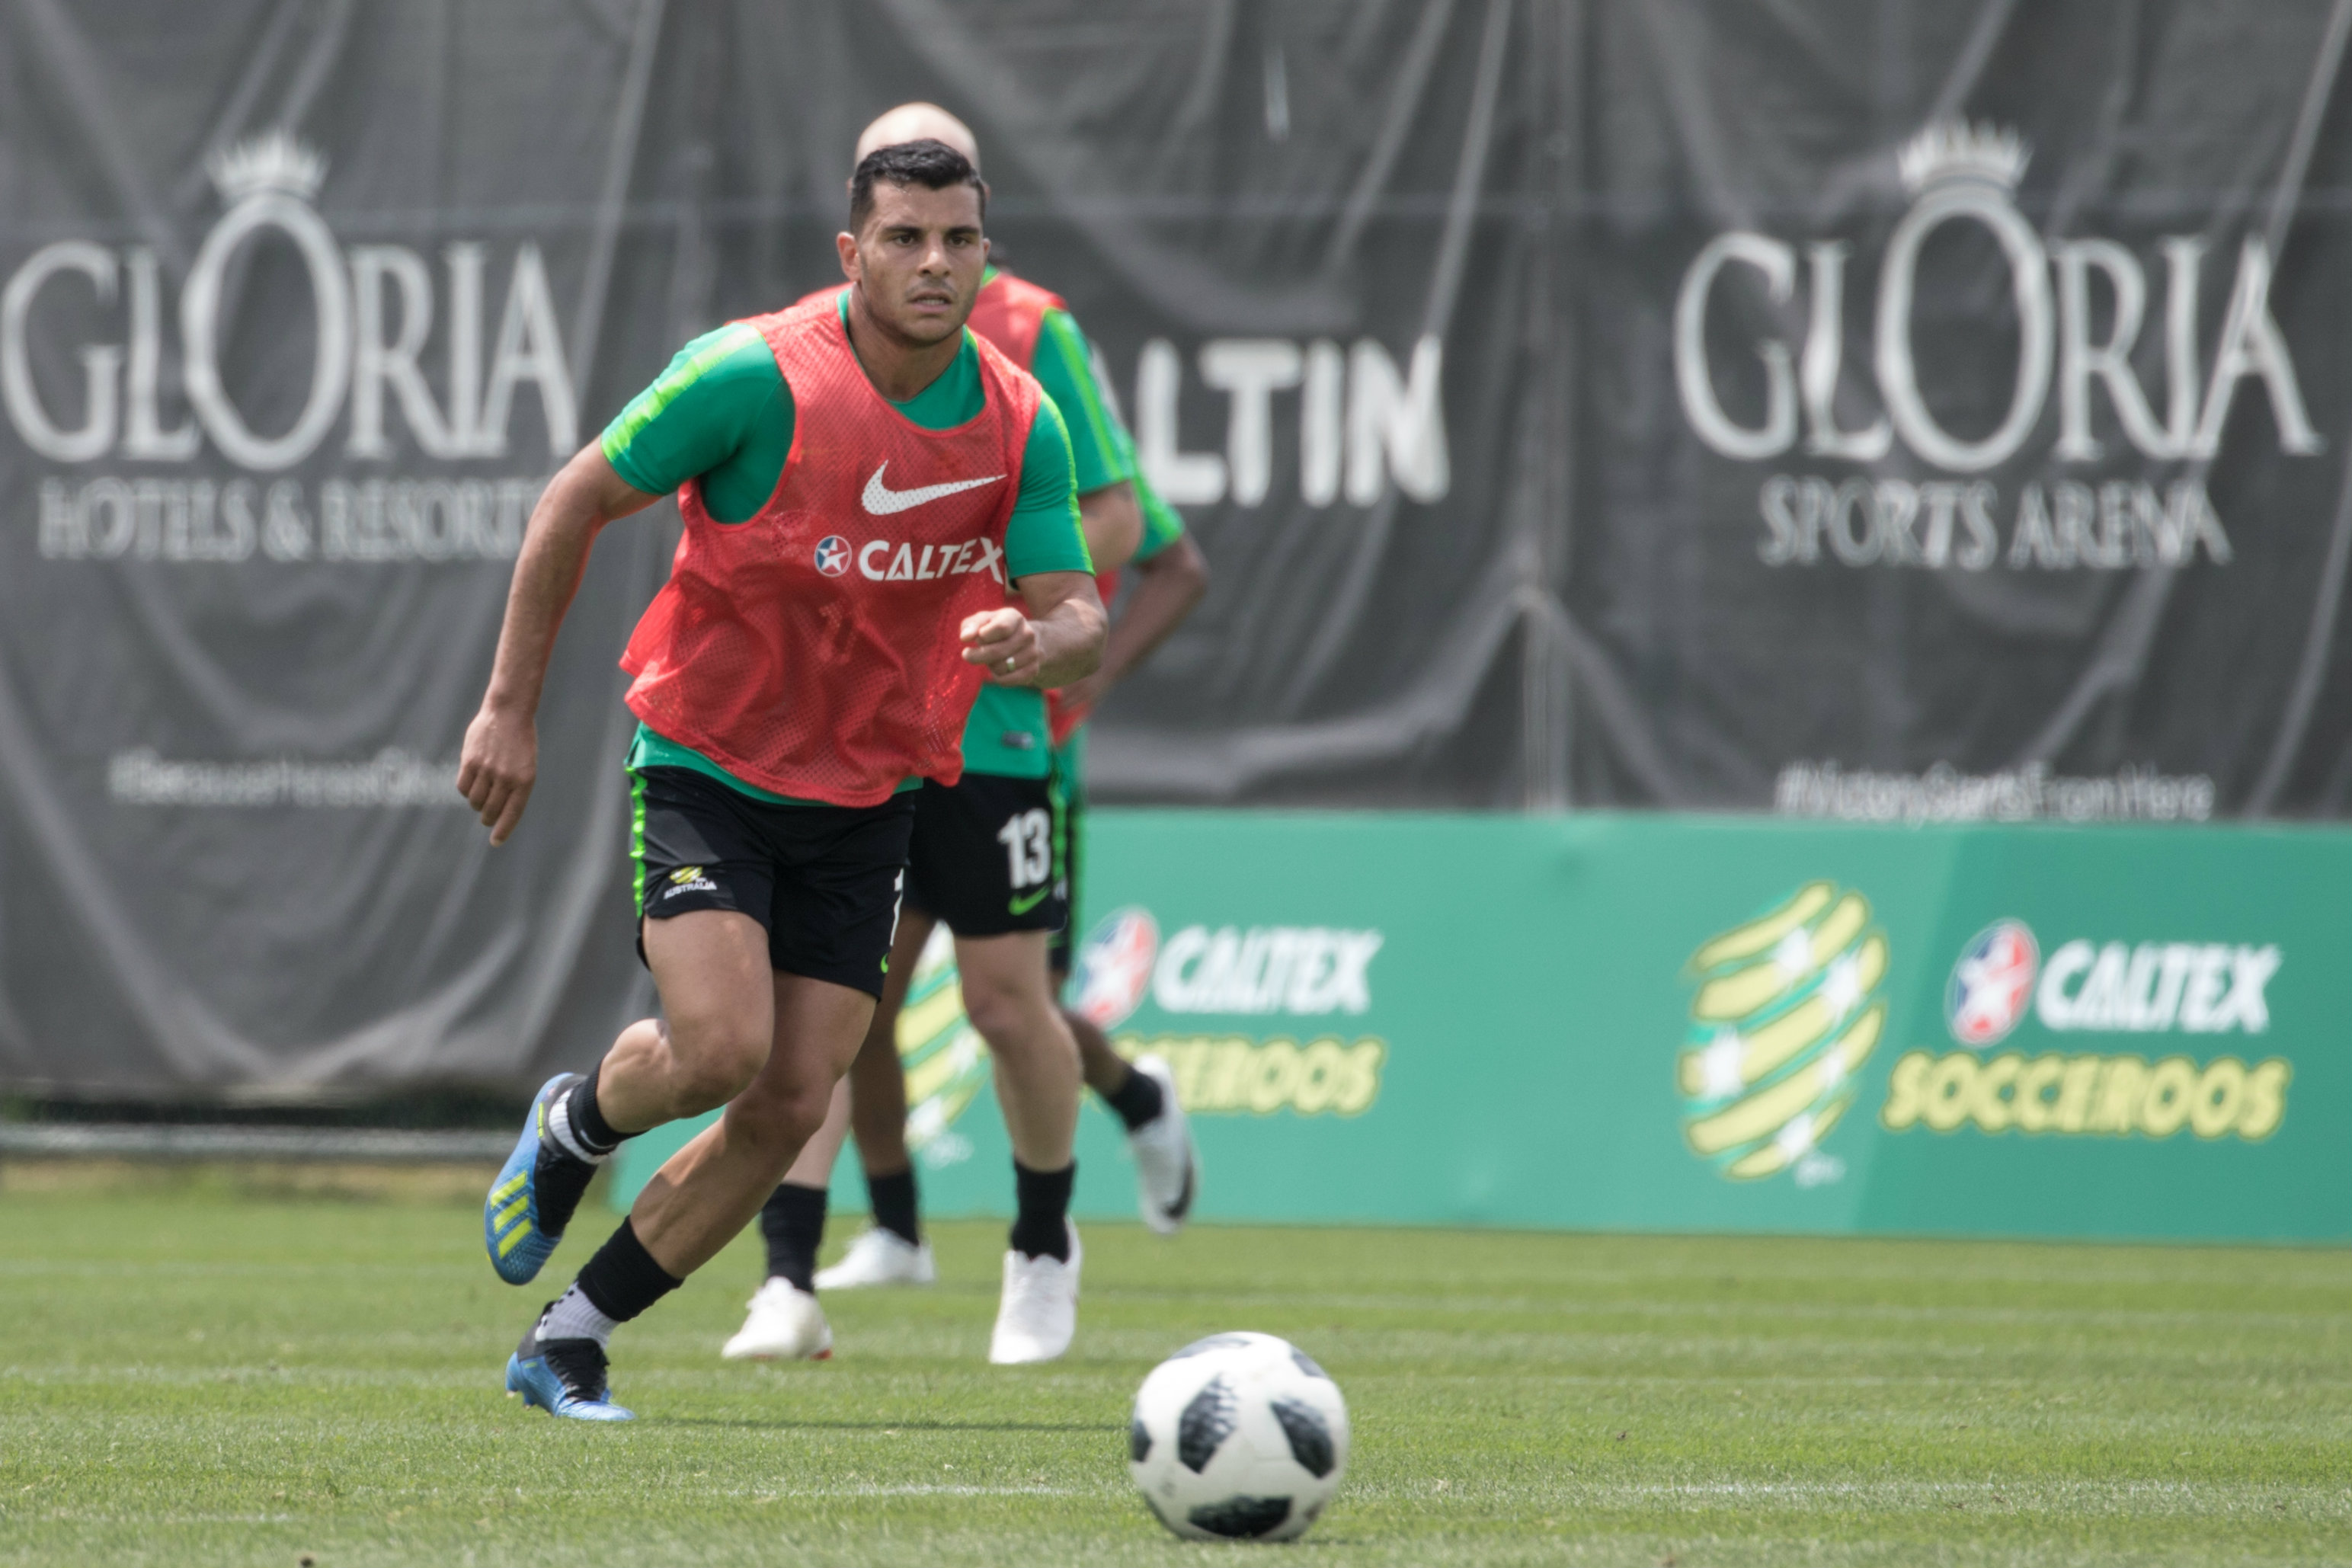 Andrew Nabbout caught the eye during a full-scale game at the end of training.